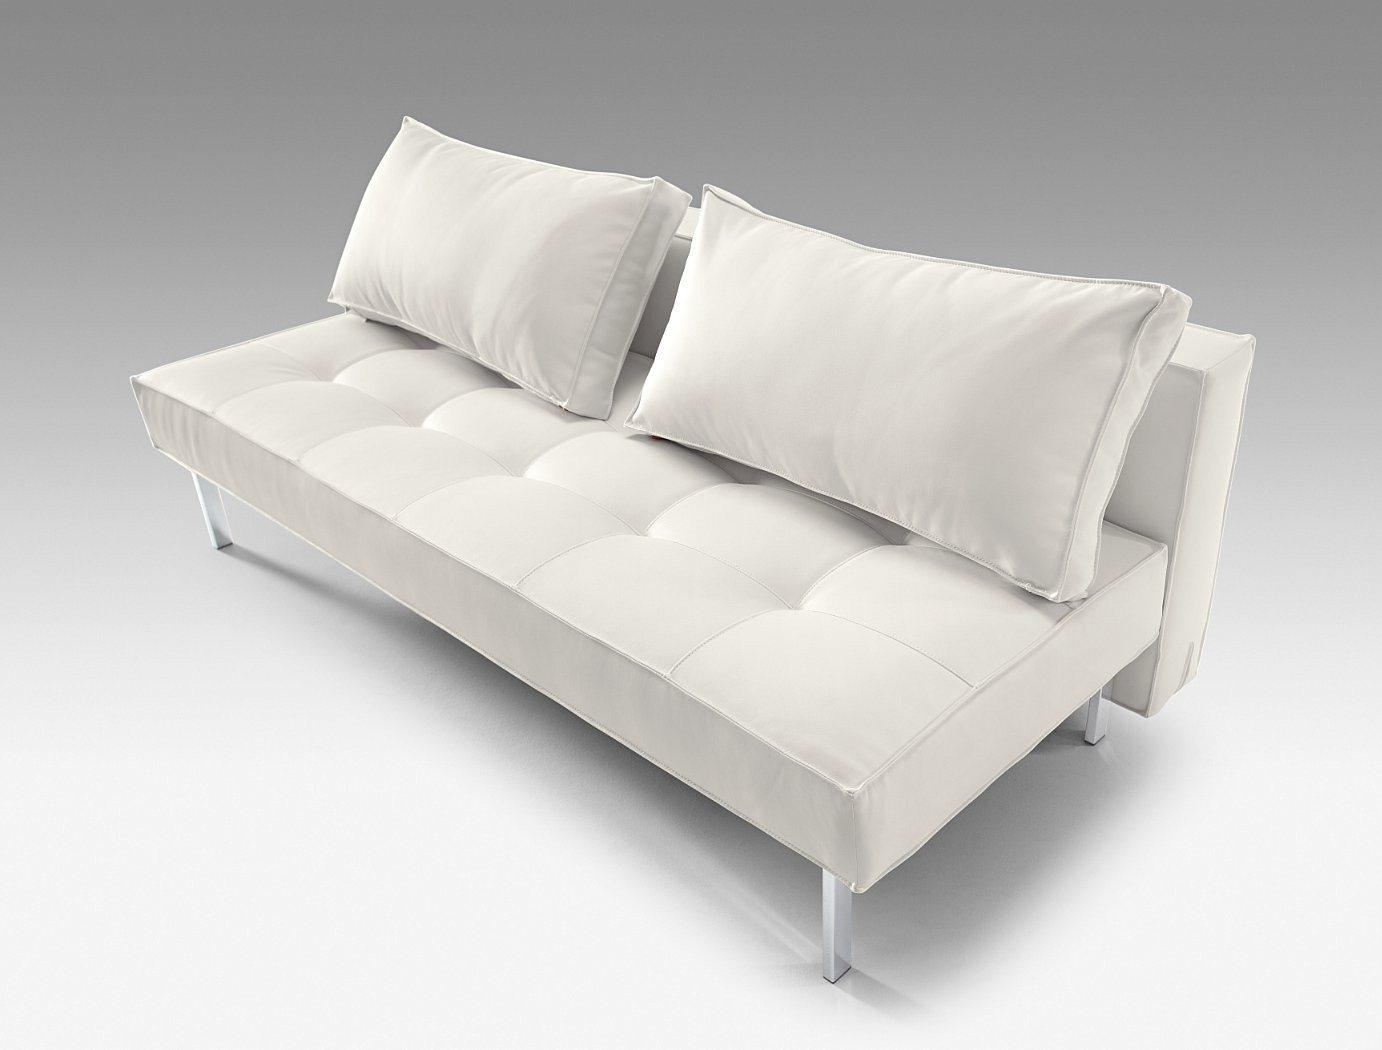 Euro Sofa Bed | Sofa Gallery | Kengire Regarding Euro Sofas (Image 5 of 20)